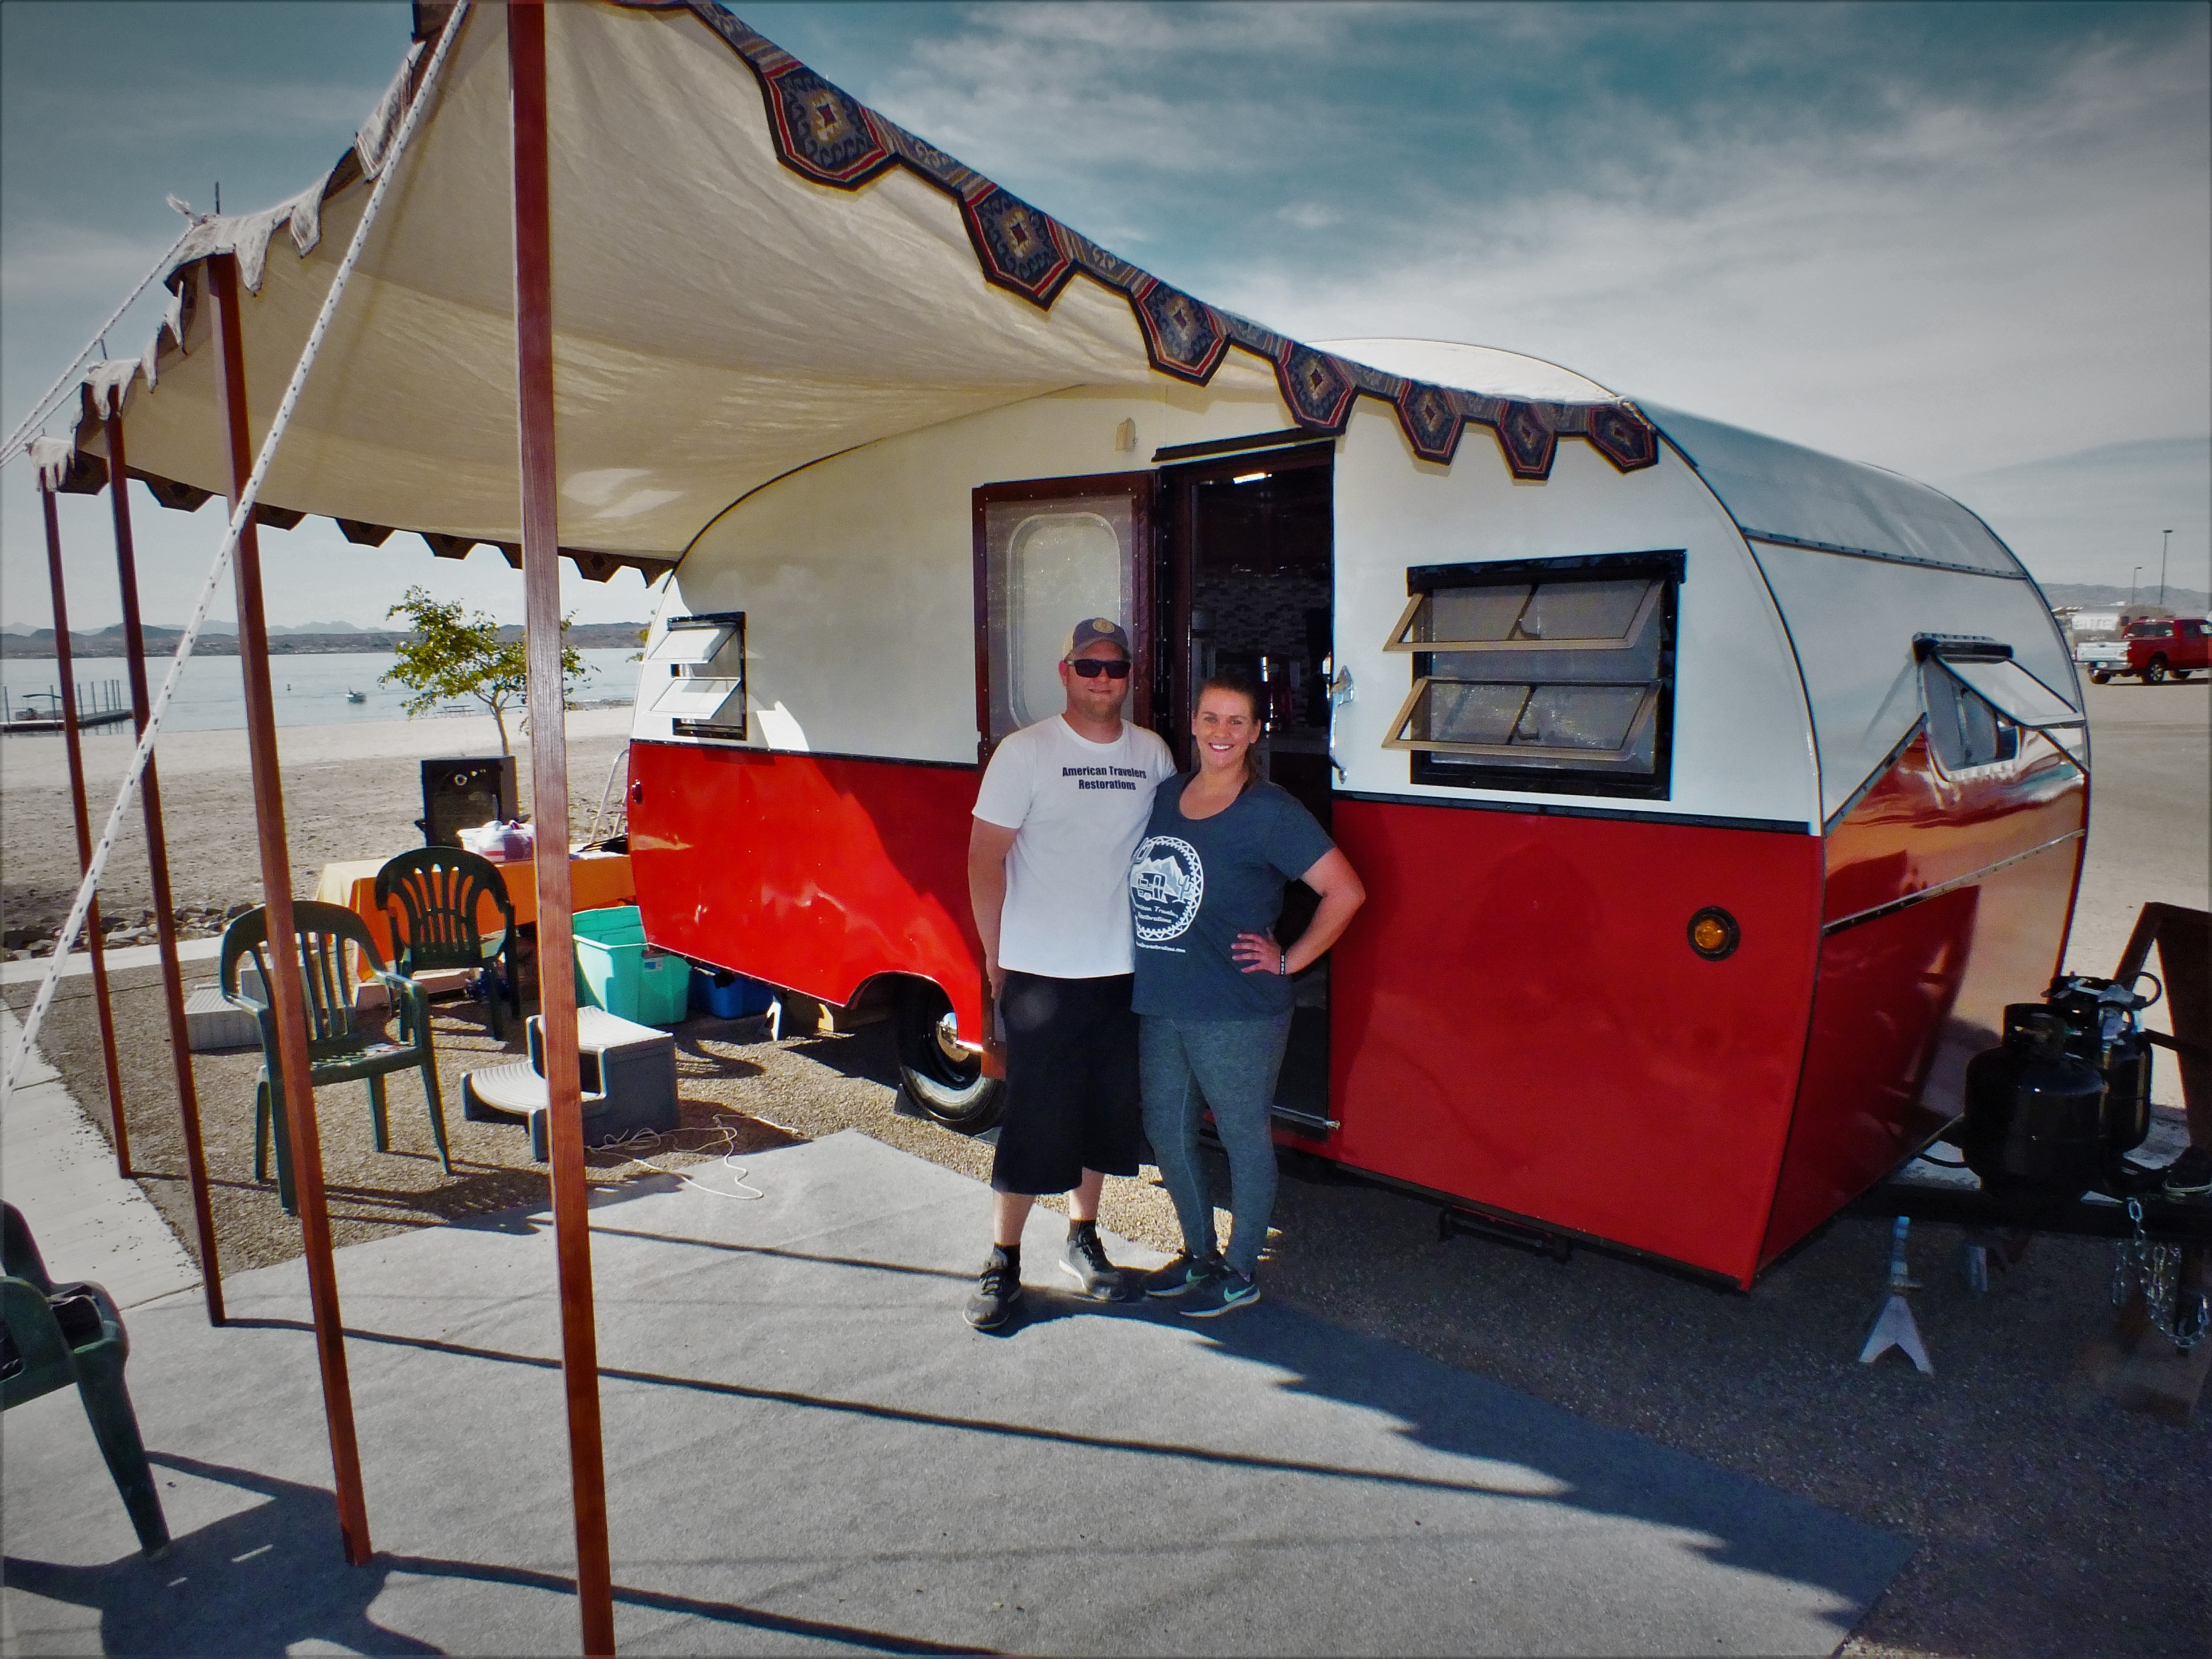 Vintage Trailer Campout: Home Sweet Home Away From Home